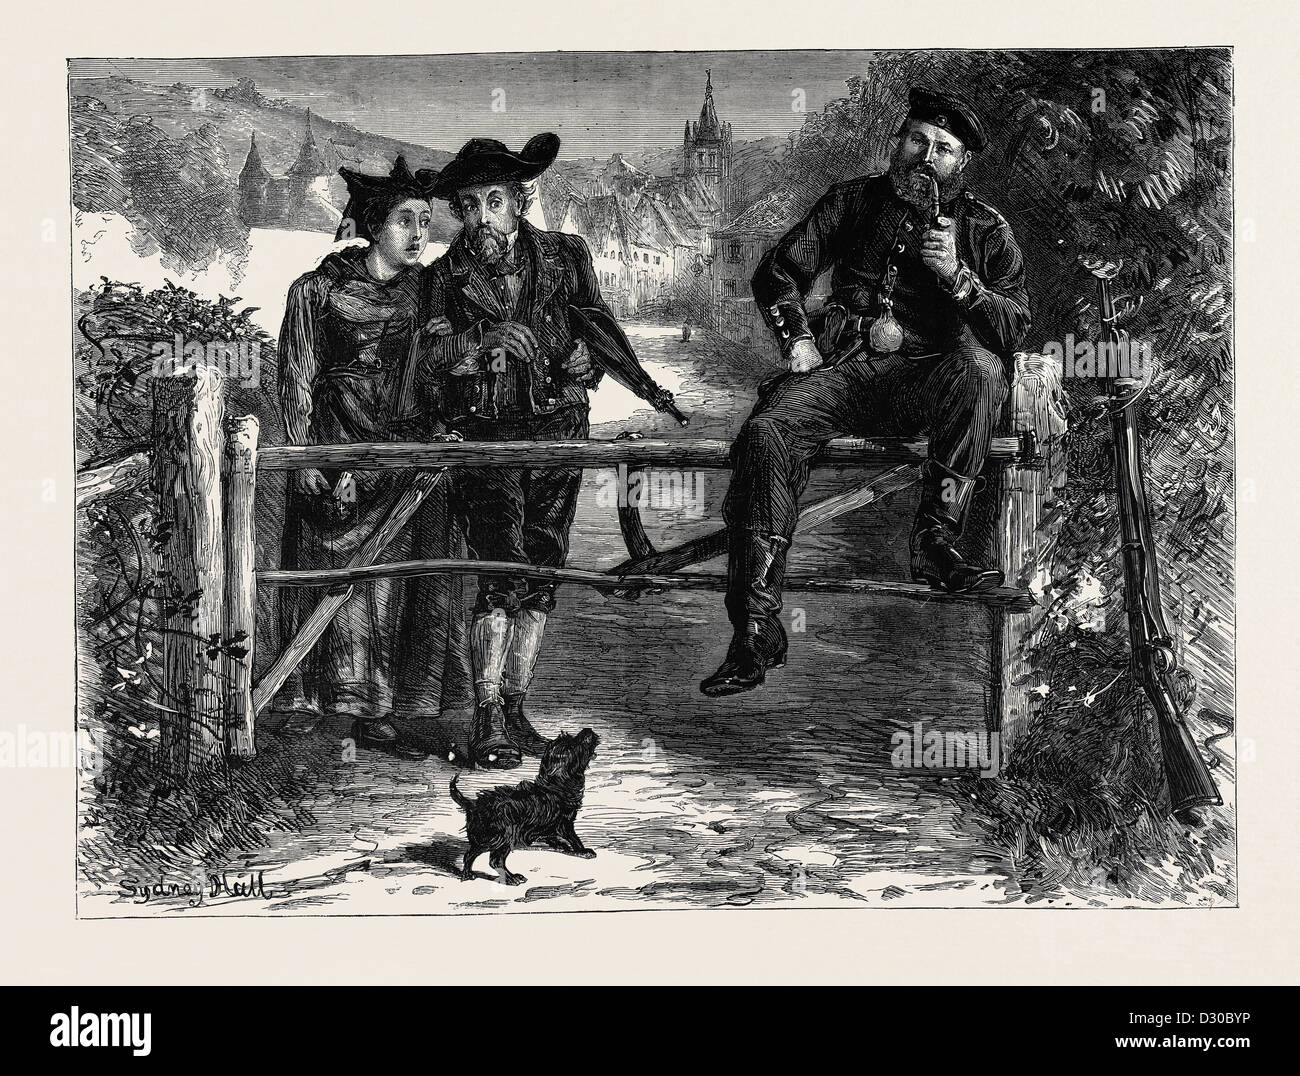 OVER THE OLD CAMPAIGNING GROUND, 'POSSESSION IS NINE POINTS OF THE LAW' - Stock Image